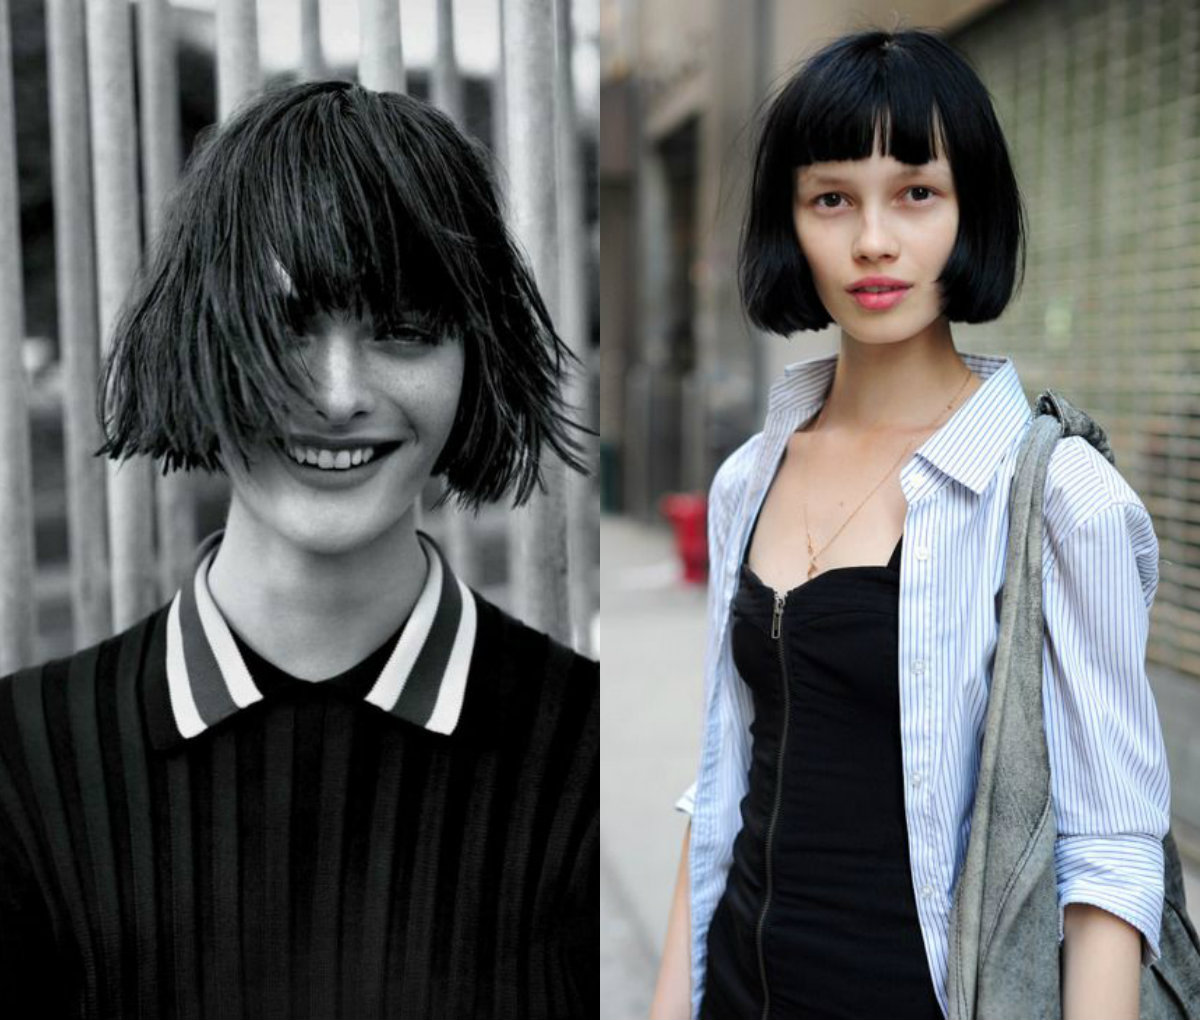 blunt-cut-bob-hairstyles-with-bangs